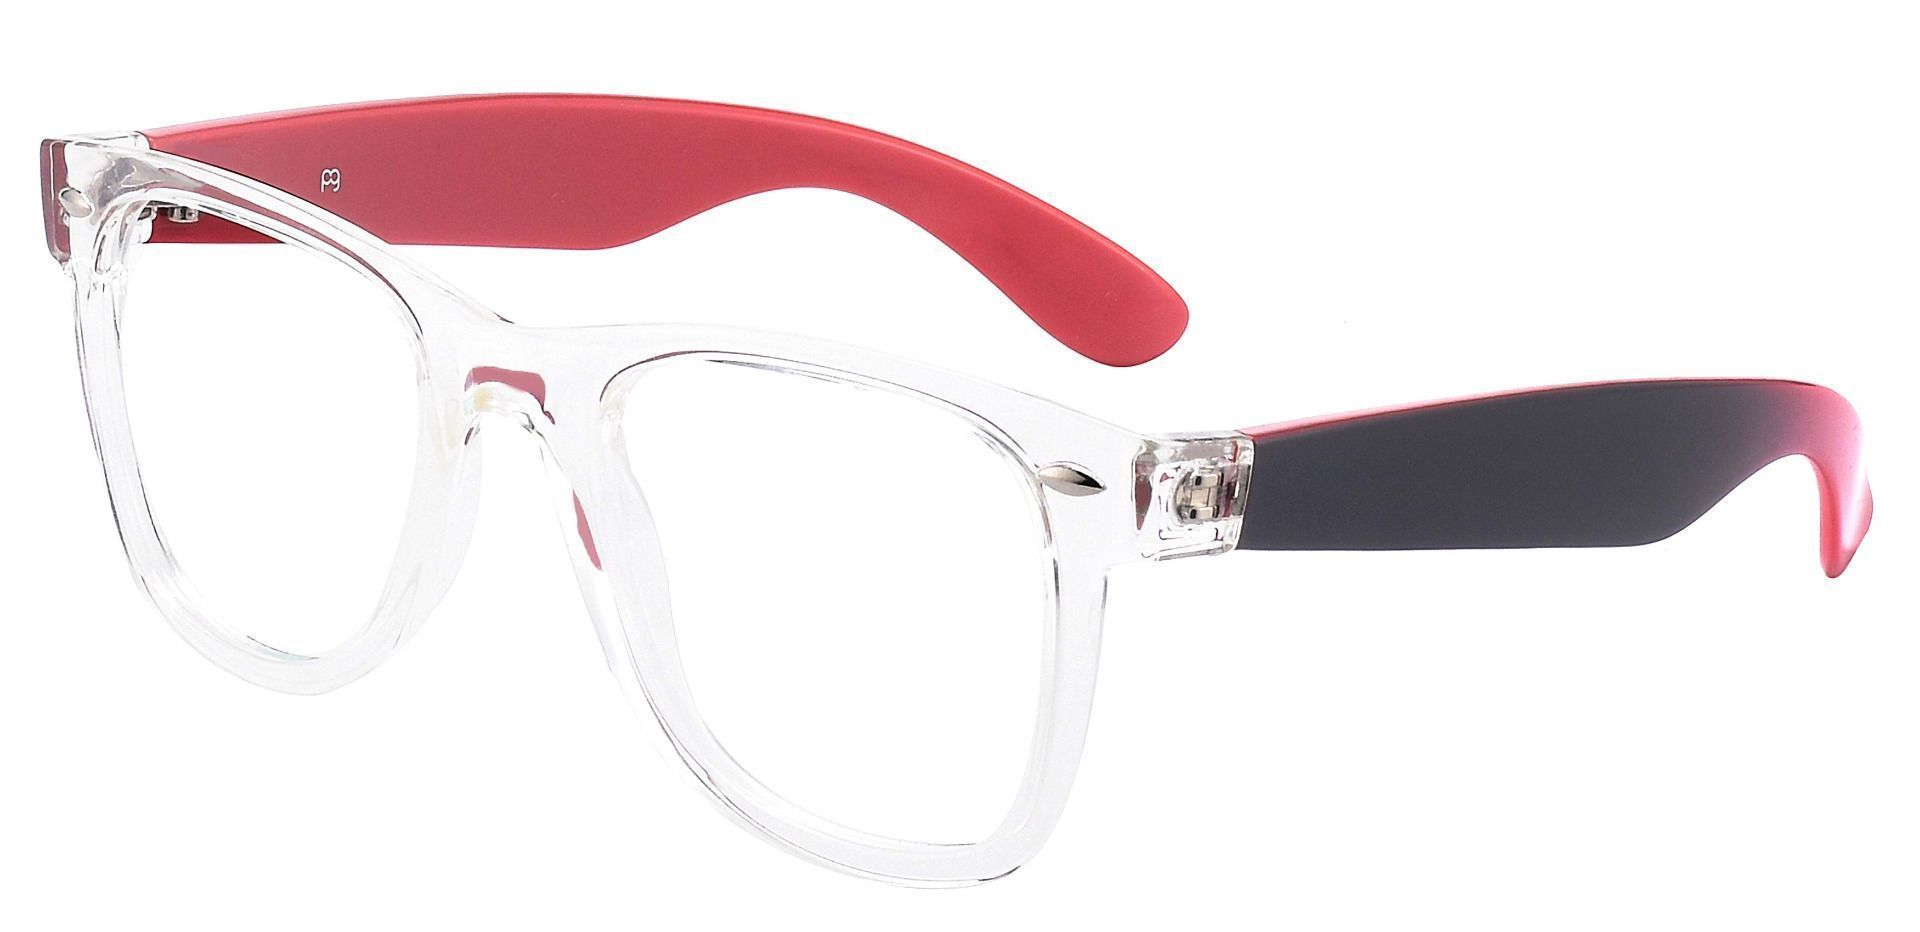 Adrian Square Prescription Glasses - The Frame Is Clear And Red